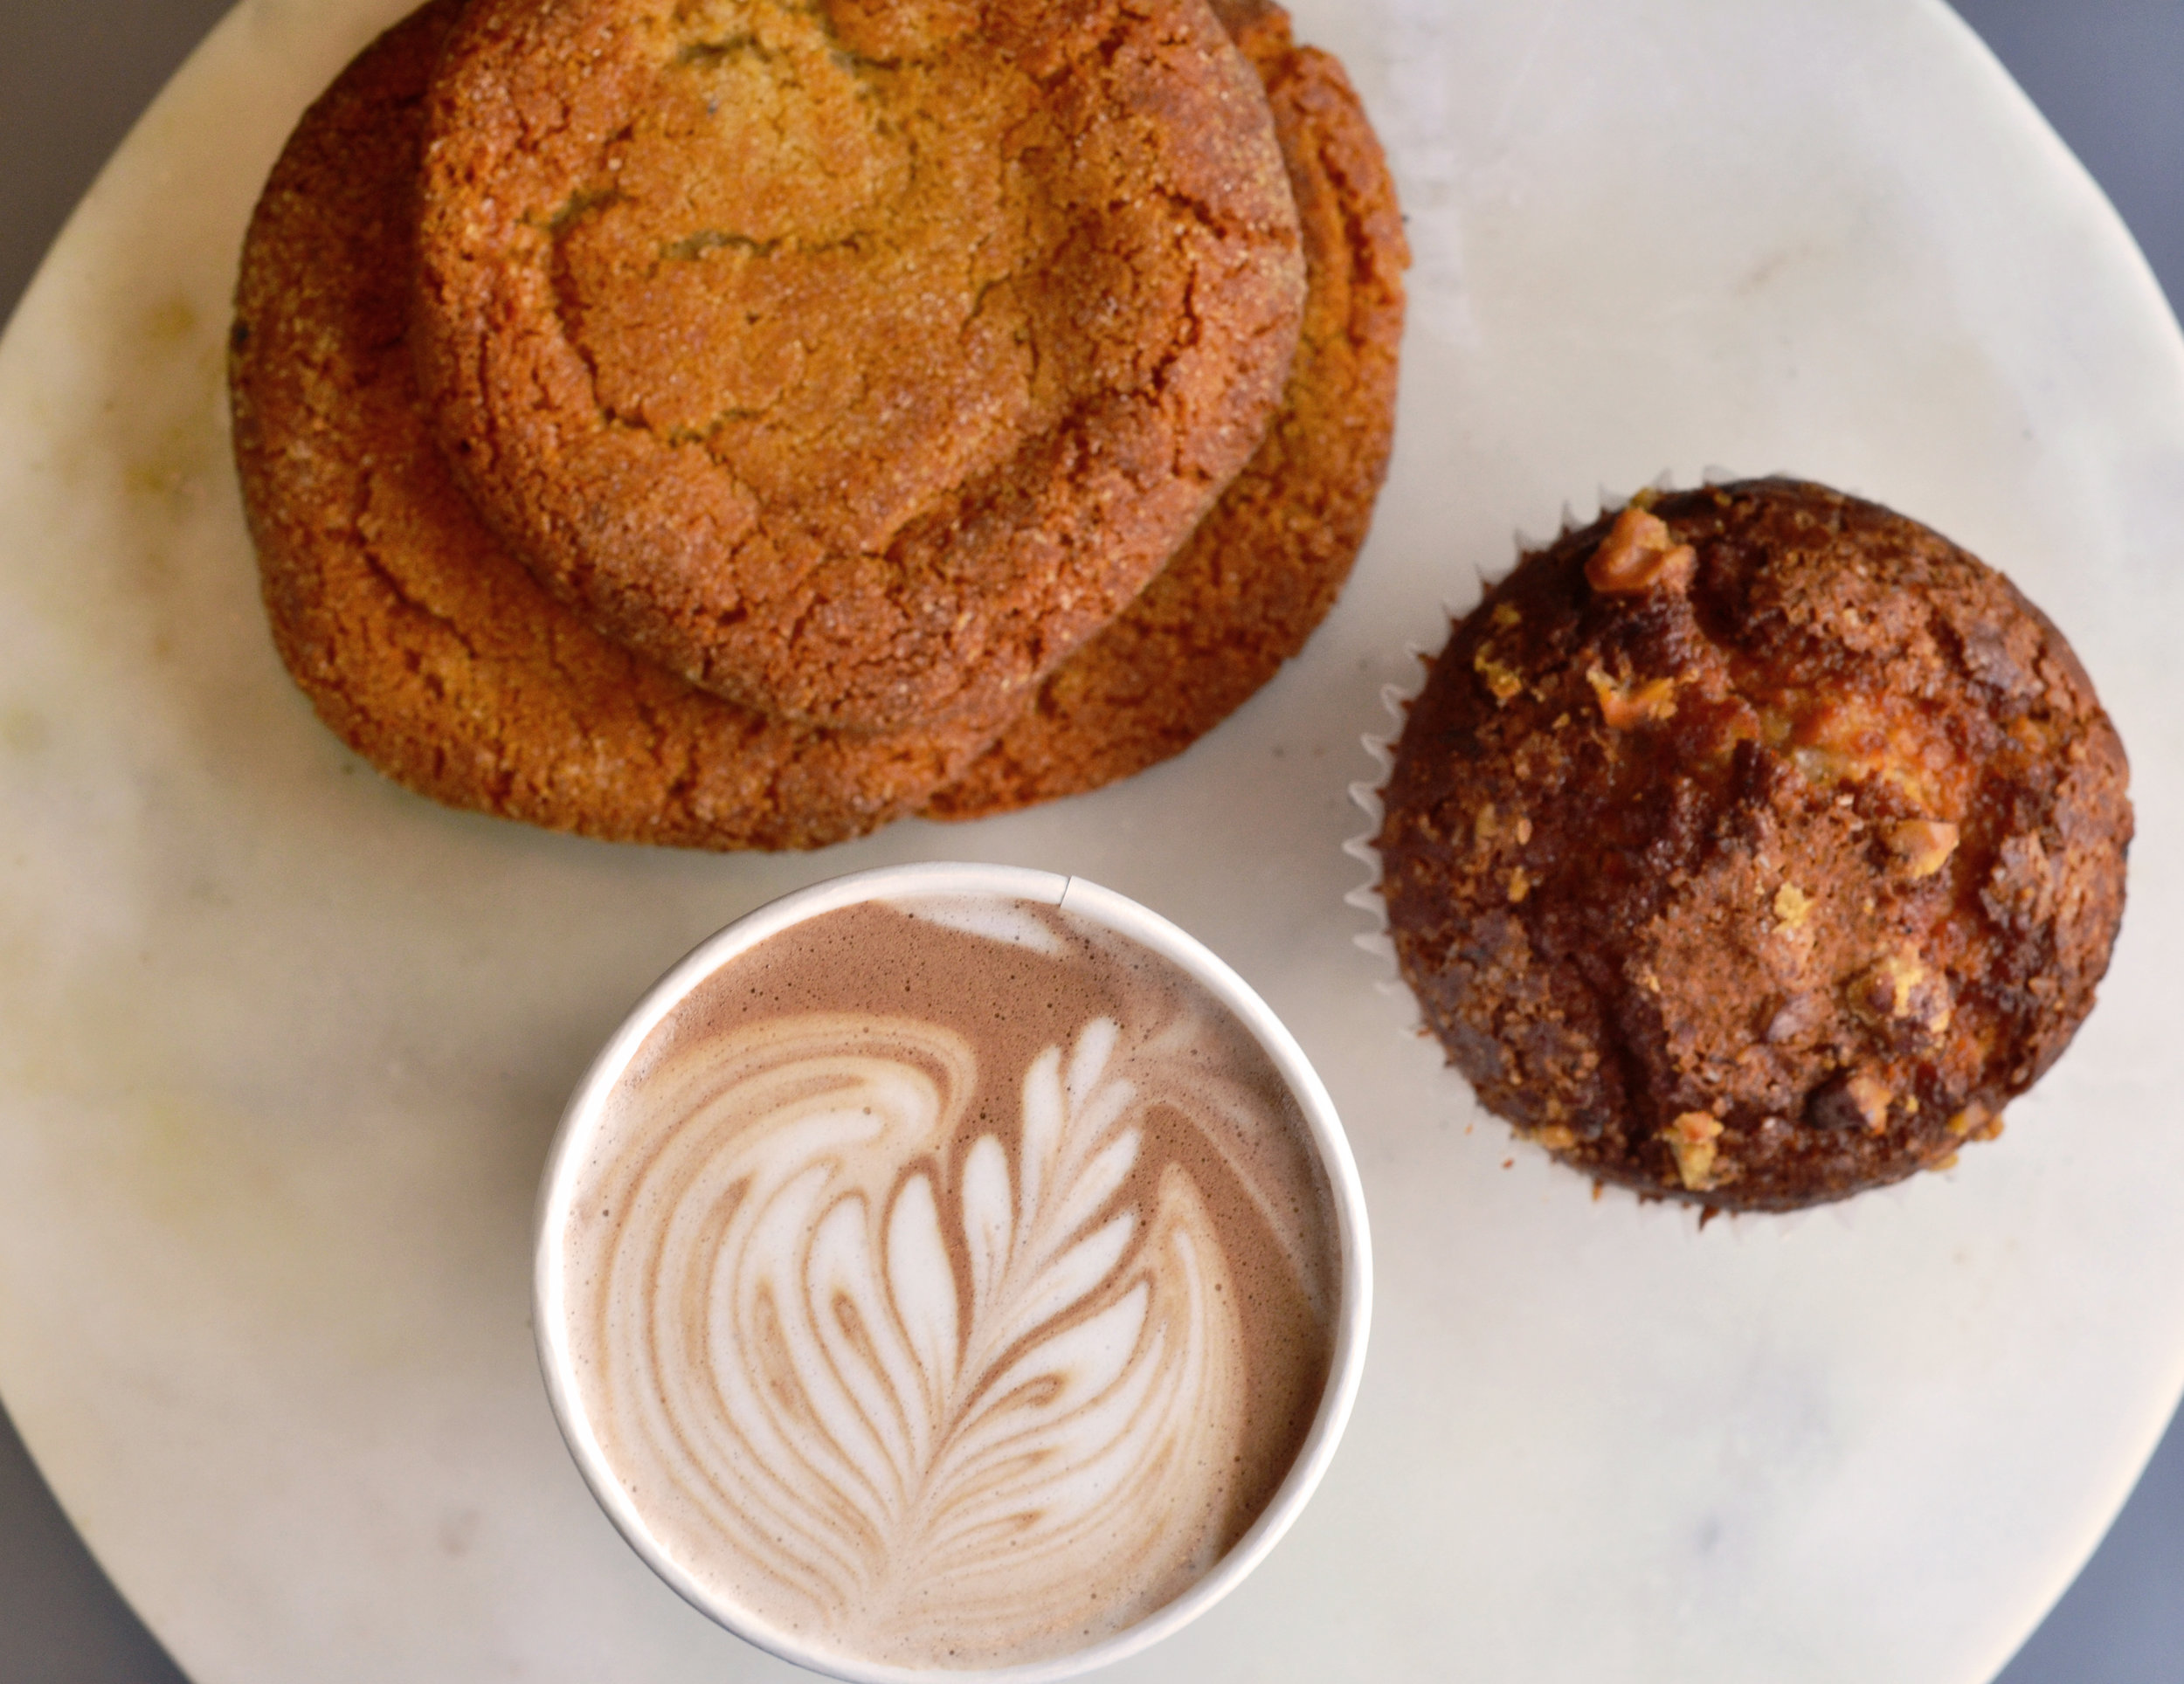 Our Mocha accompanied by locally made pastries